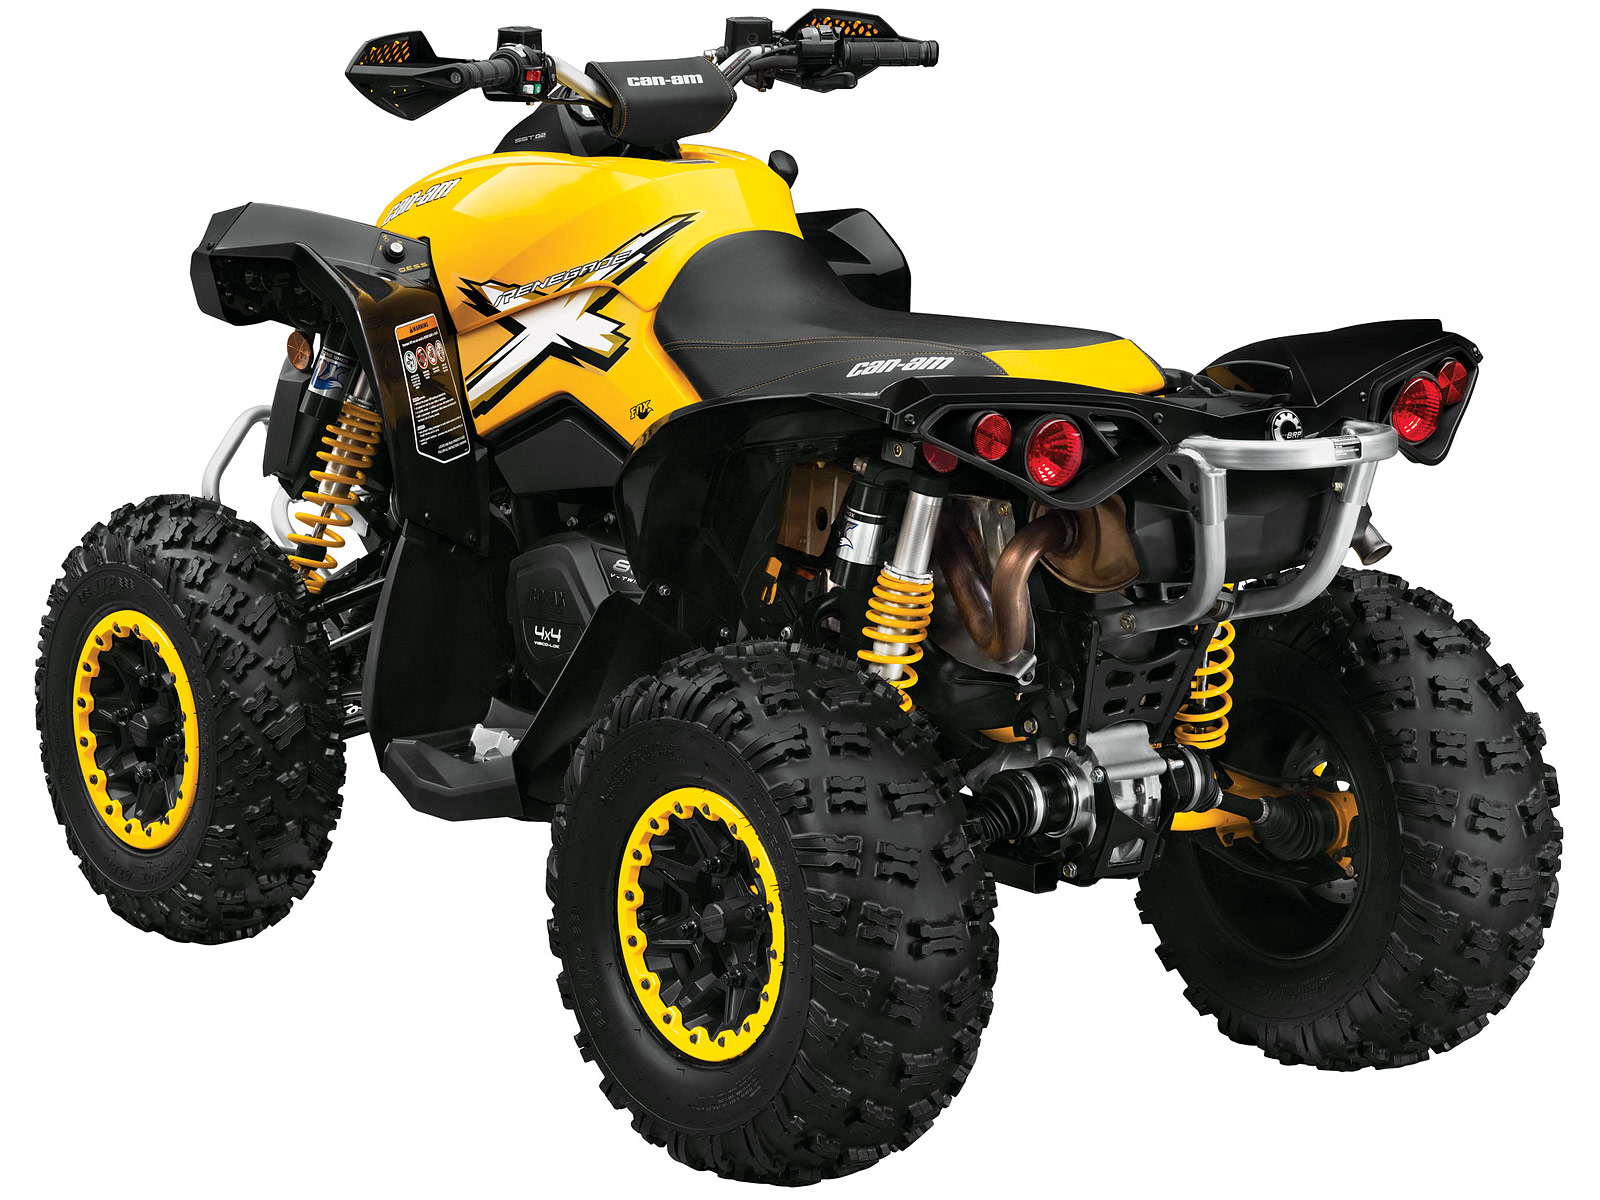 can am insurance information 2013 renegade xxc 800r atv pictures. Black Bedroom Furniture Sets. Home Design Ideas